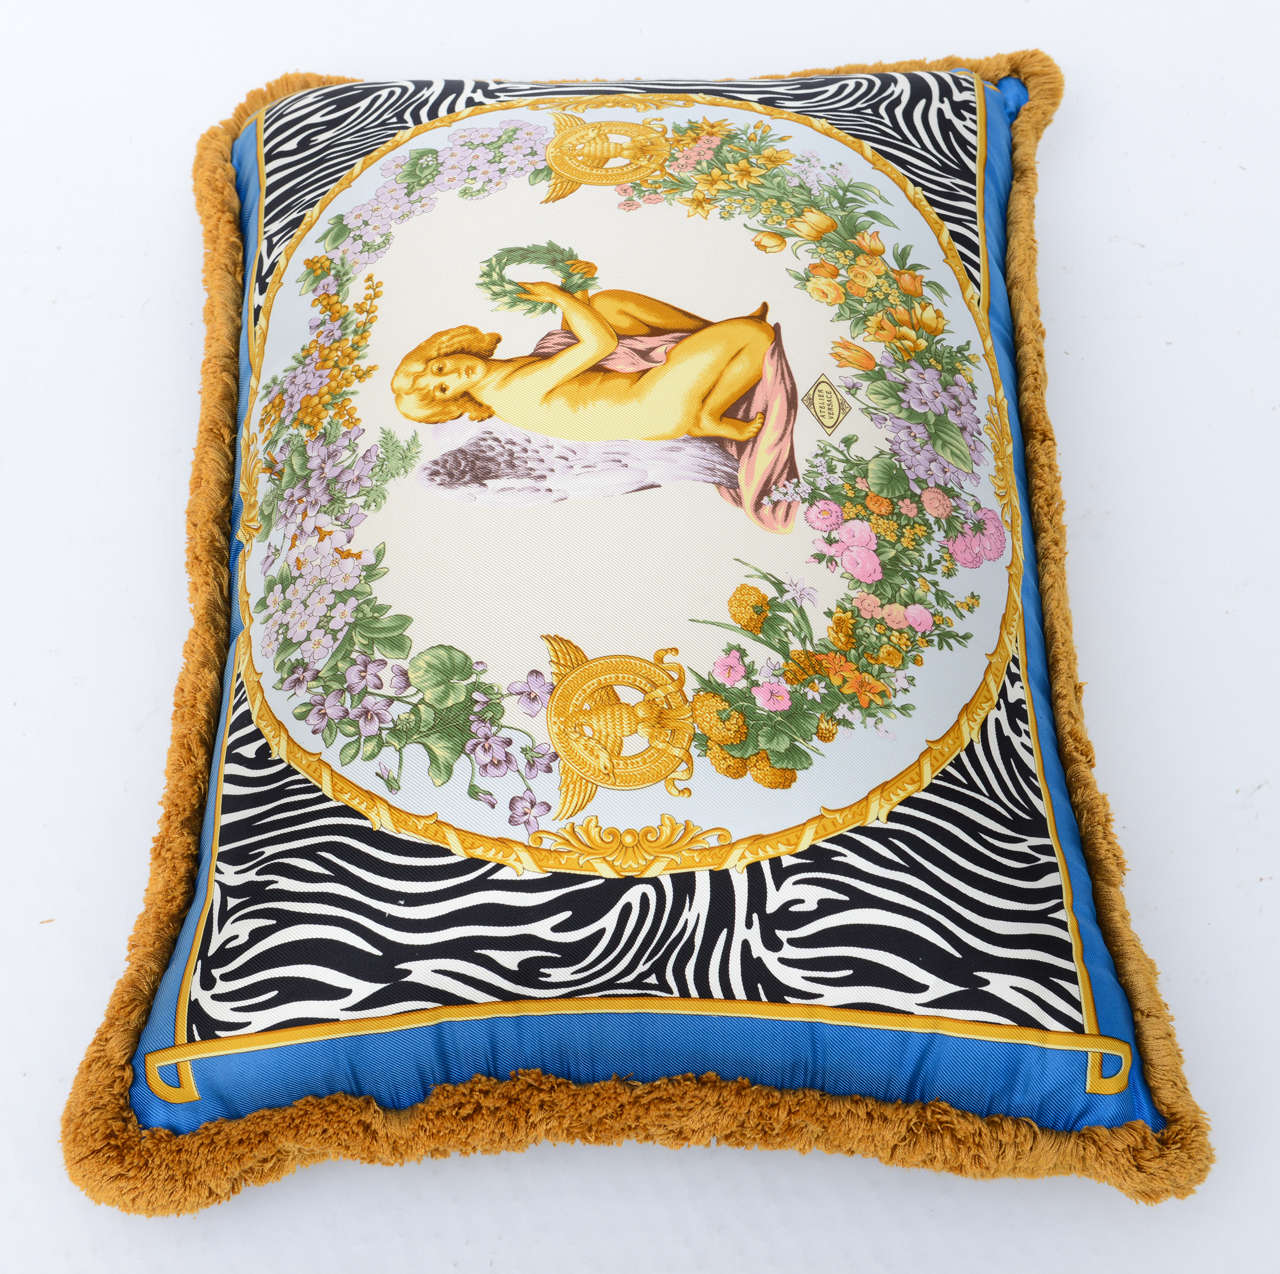 Atelier Versace Pillow At 1stdibs